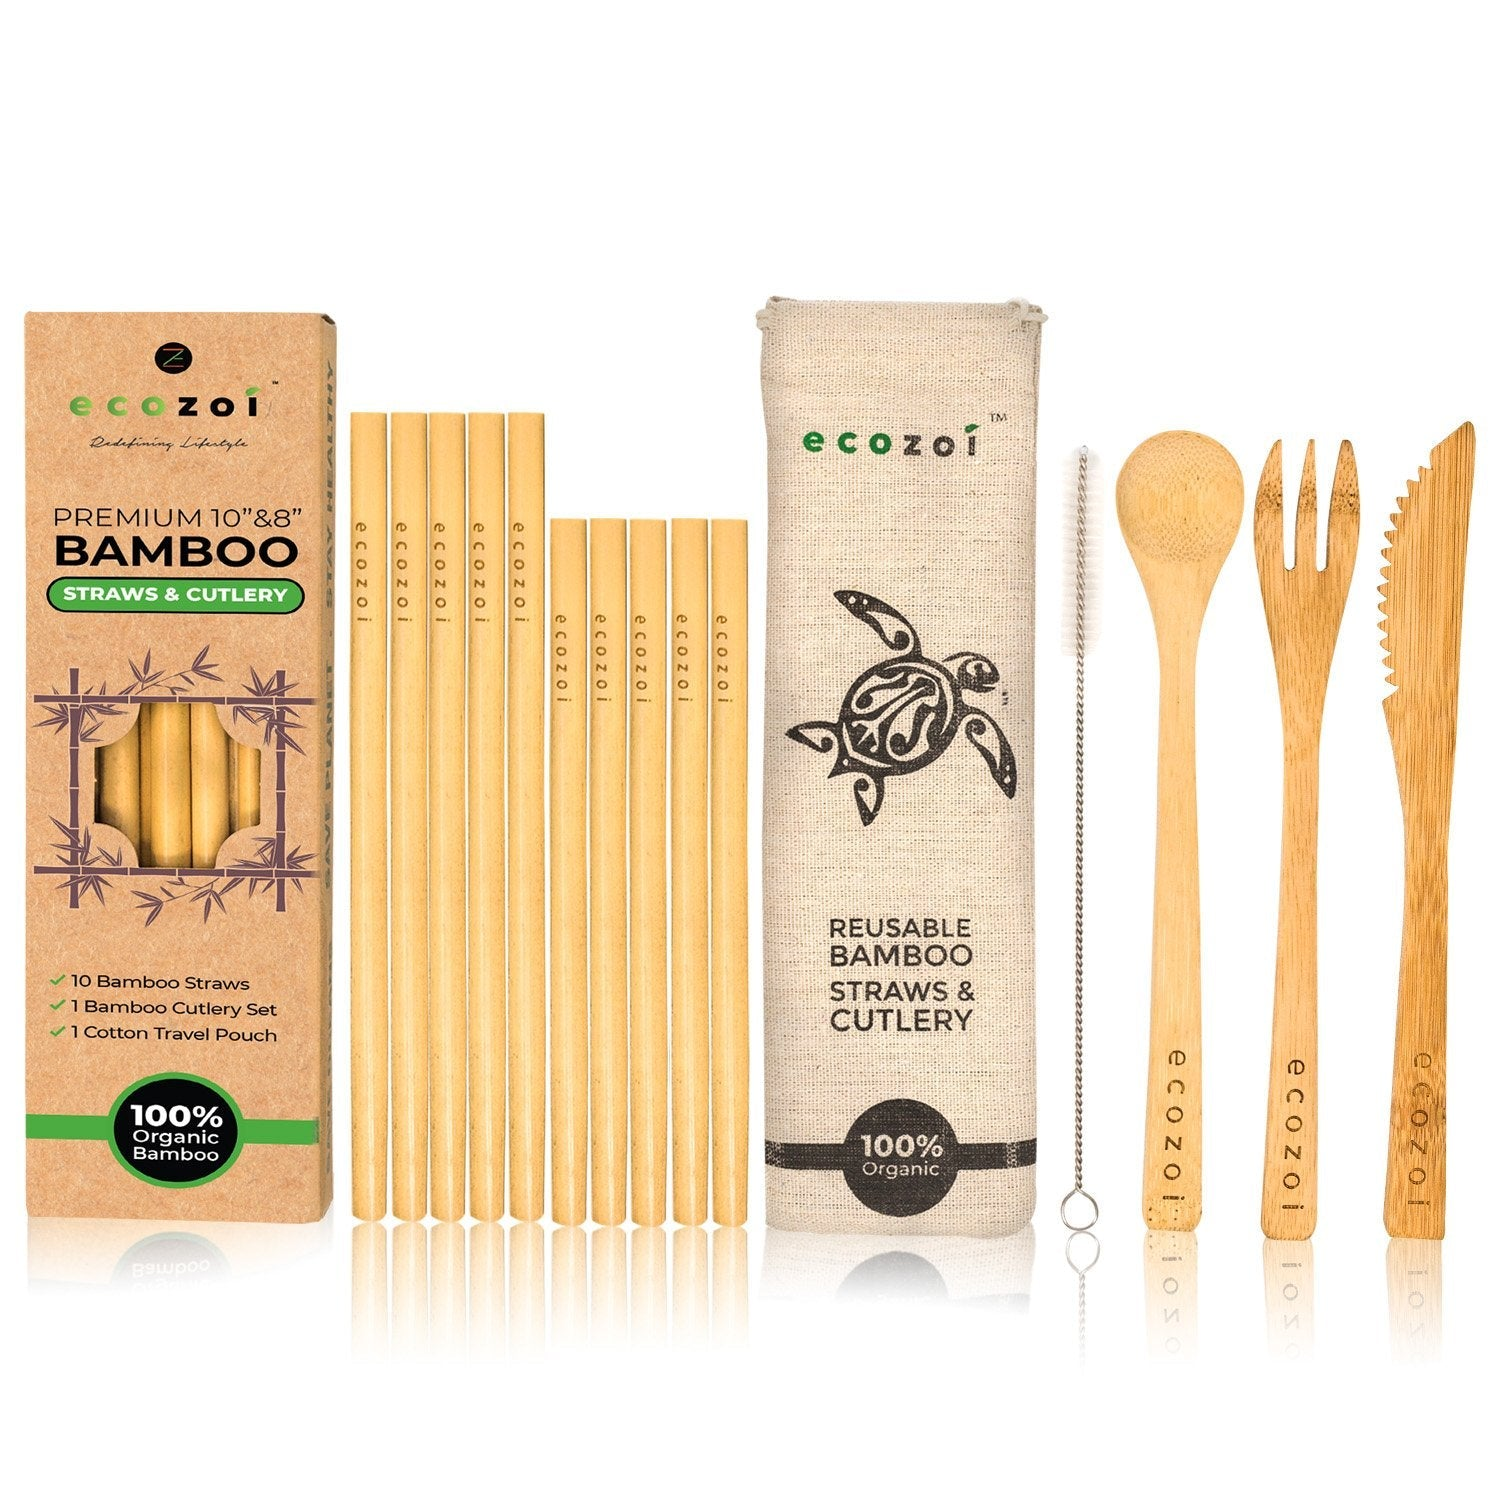 Organic Bamboo Straws and Bamboo Cutlery Utensils Set with BONUS Travel bag